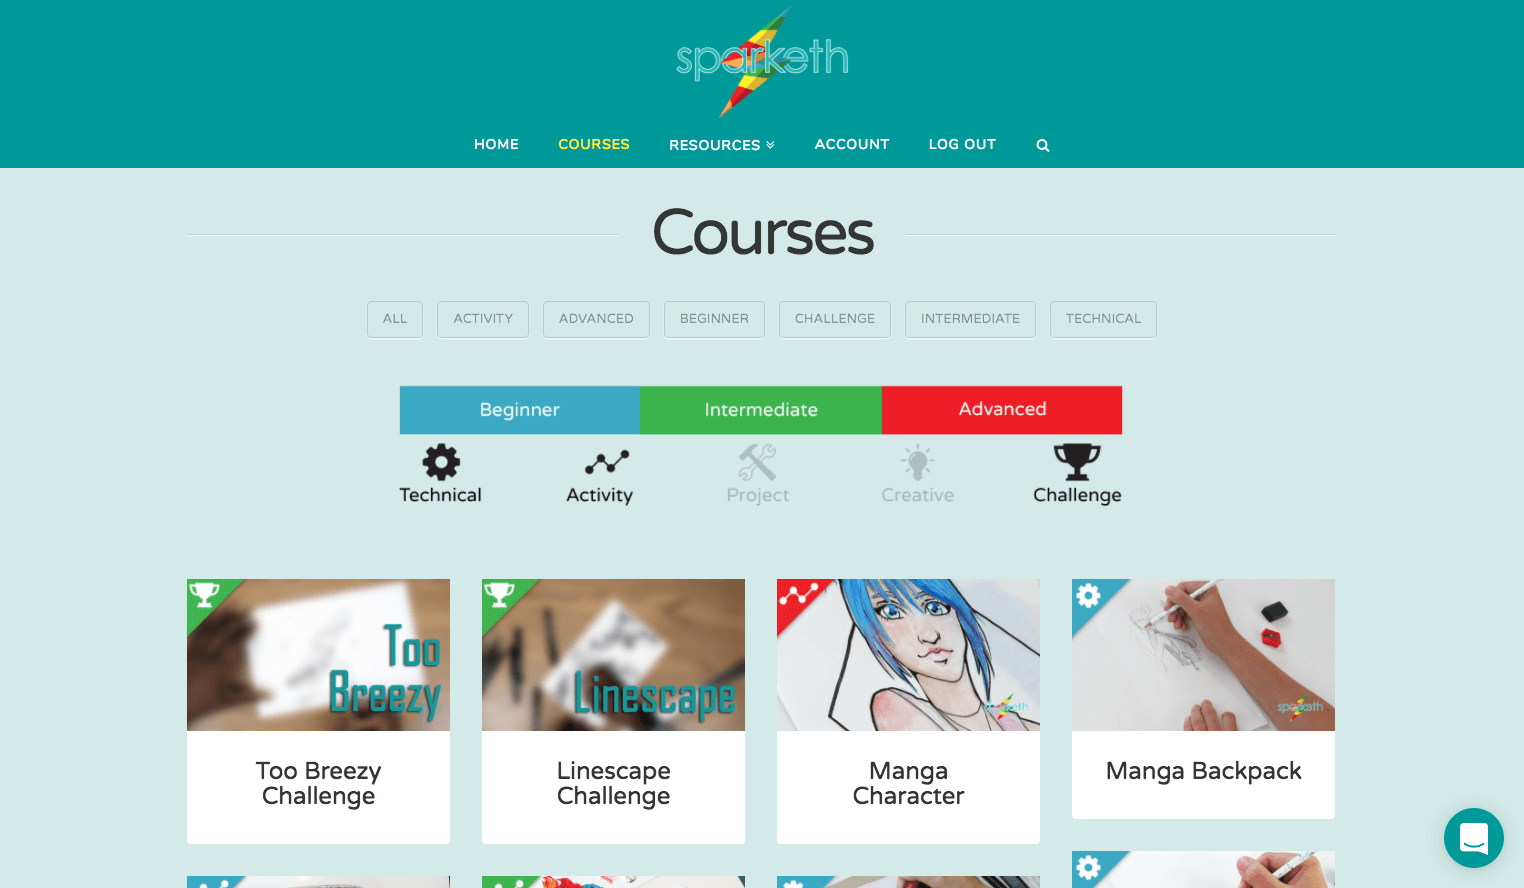 Sparketh Courses